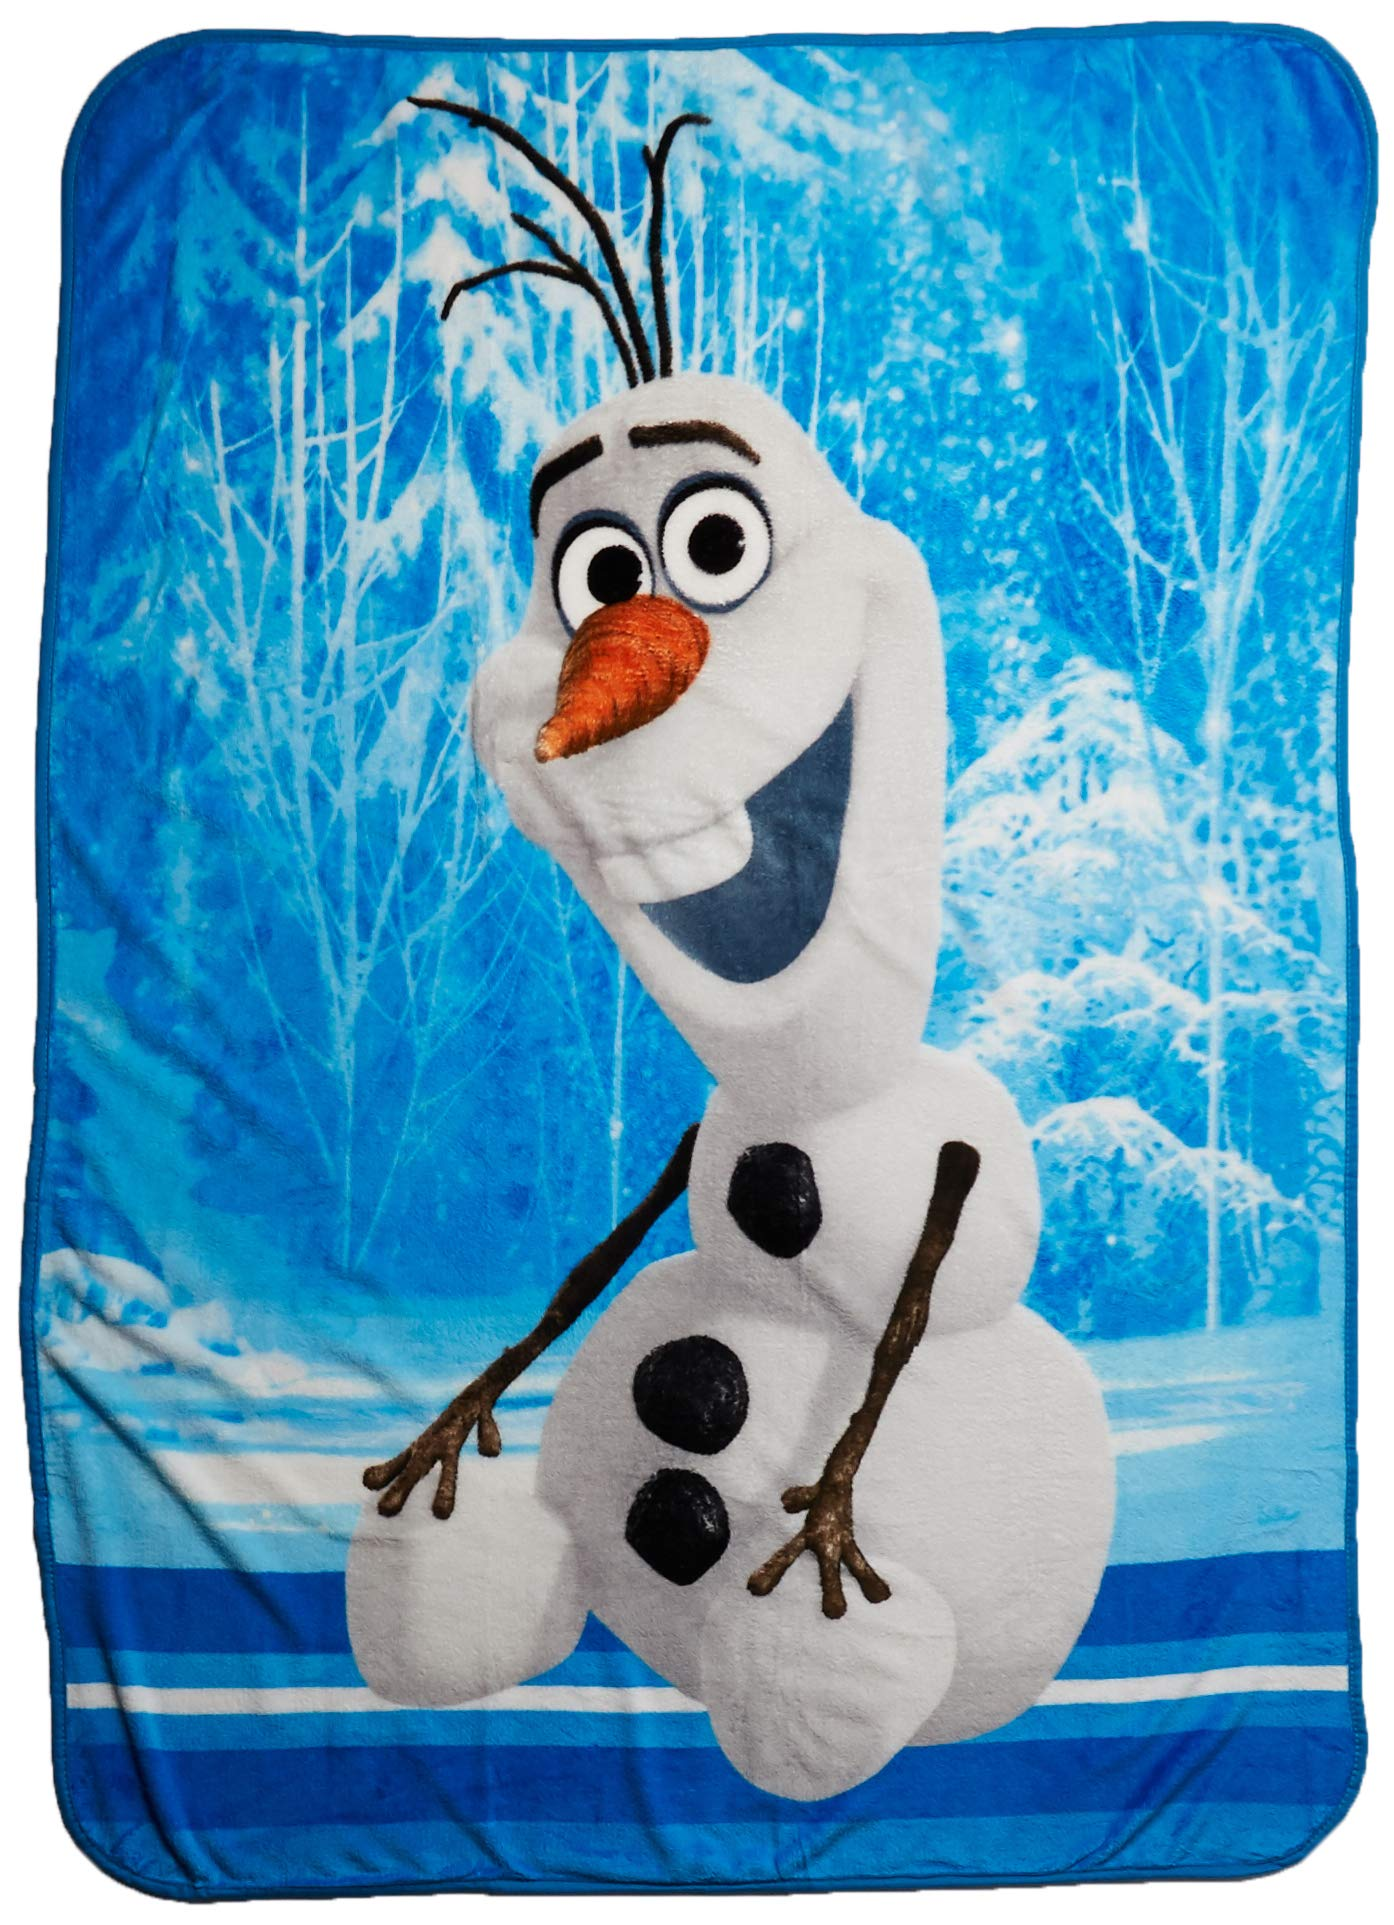 Disney Frozen Super Plush Throw 46″ x 60″